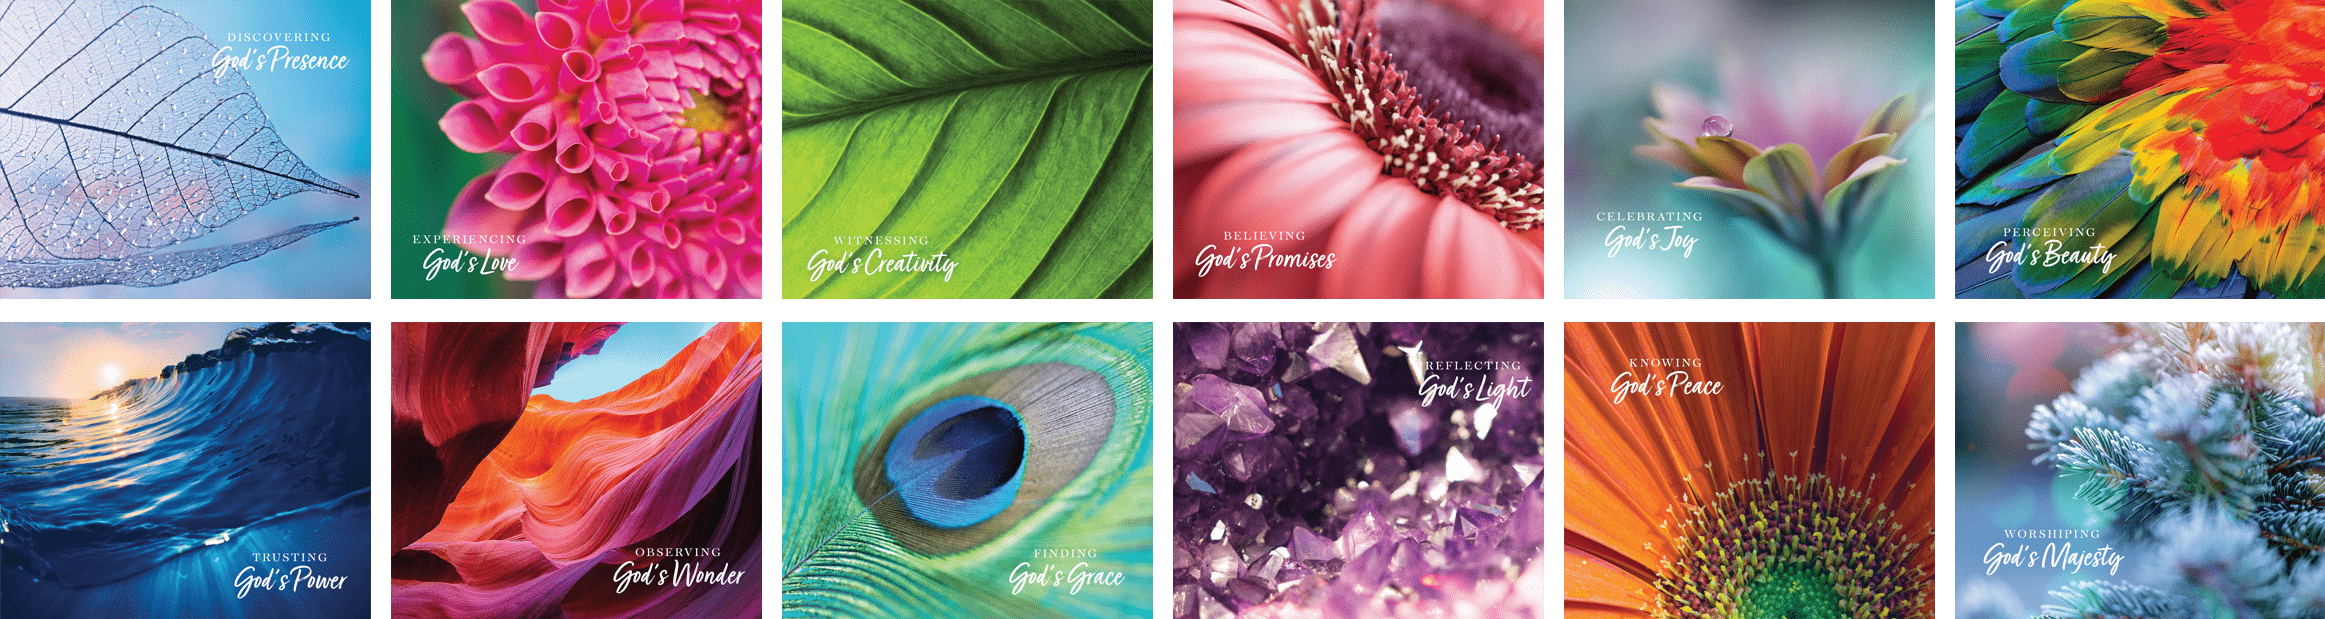 Colors of Creation 2021 Calendar